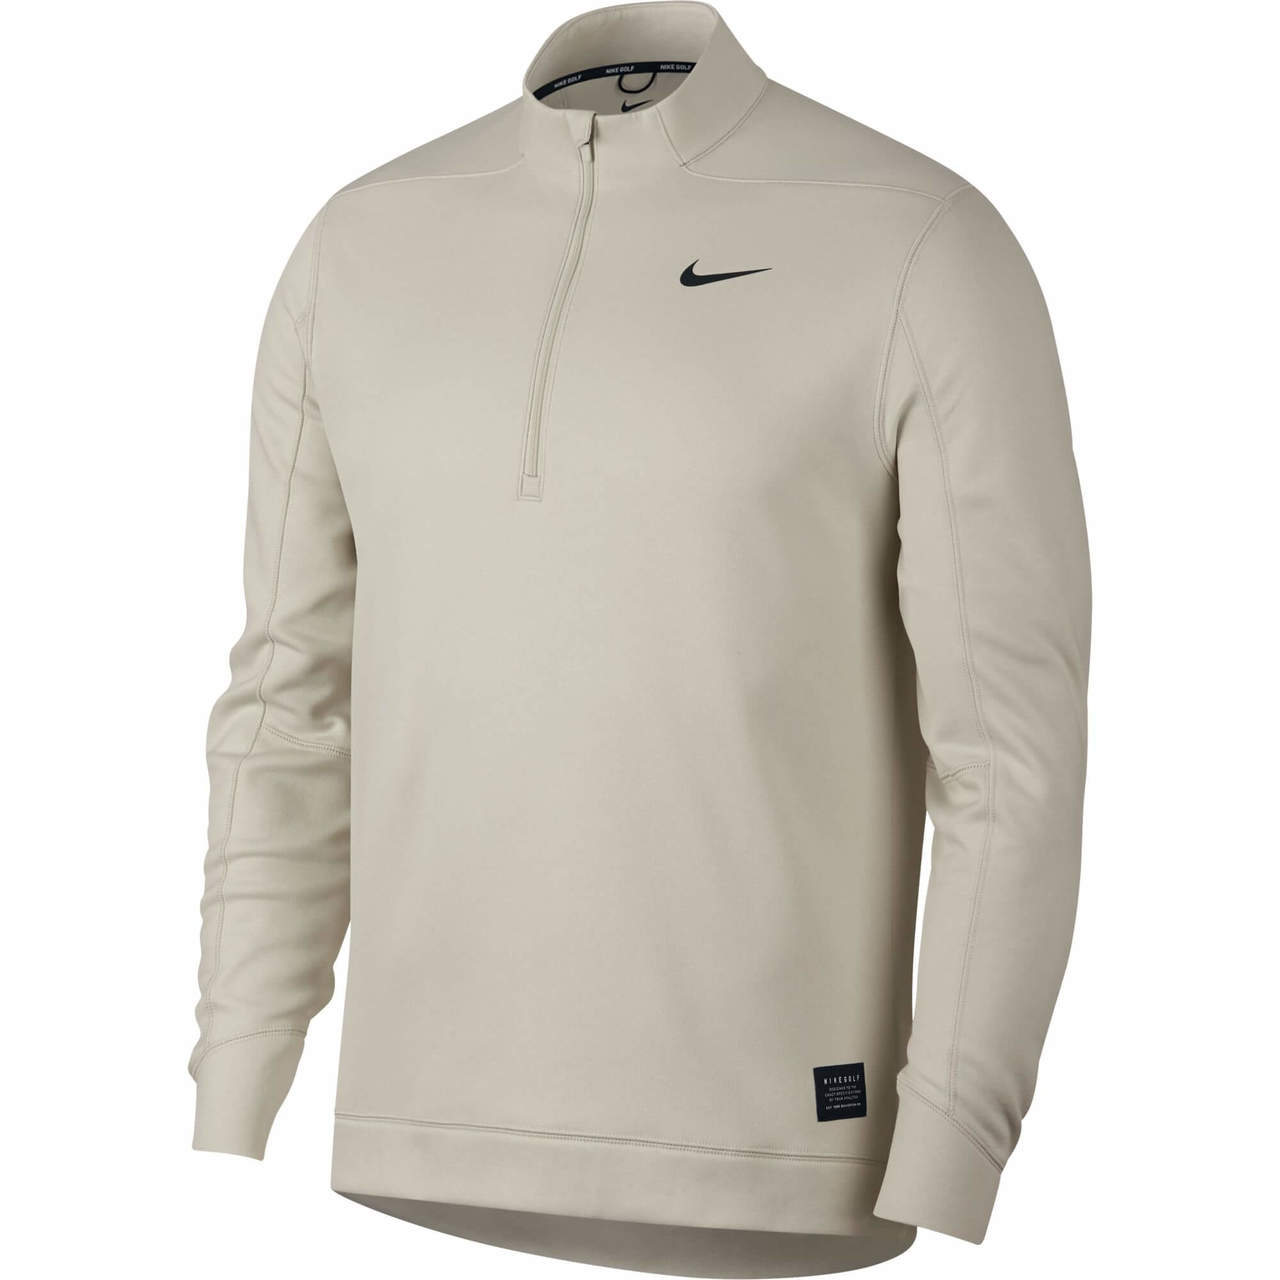 a9c05269075332 Shop Nike Therma Repel Half-Zip Men s Golf Top